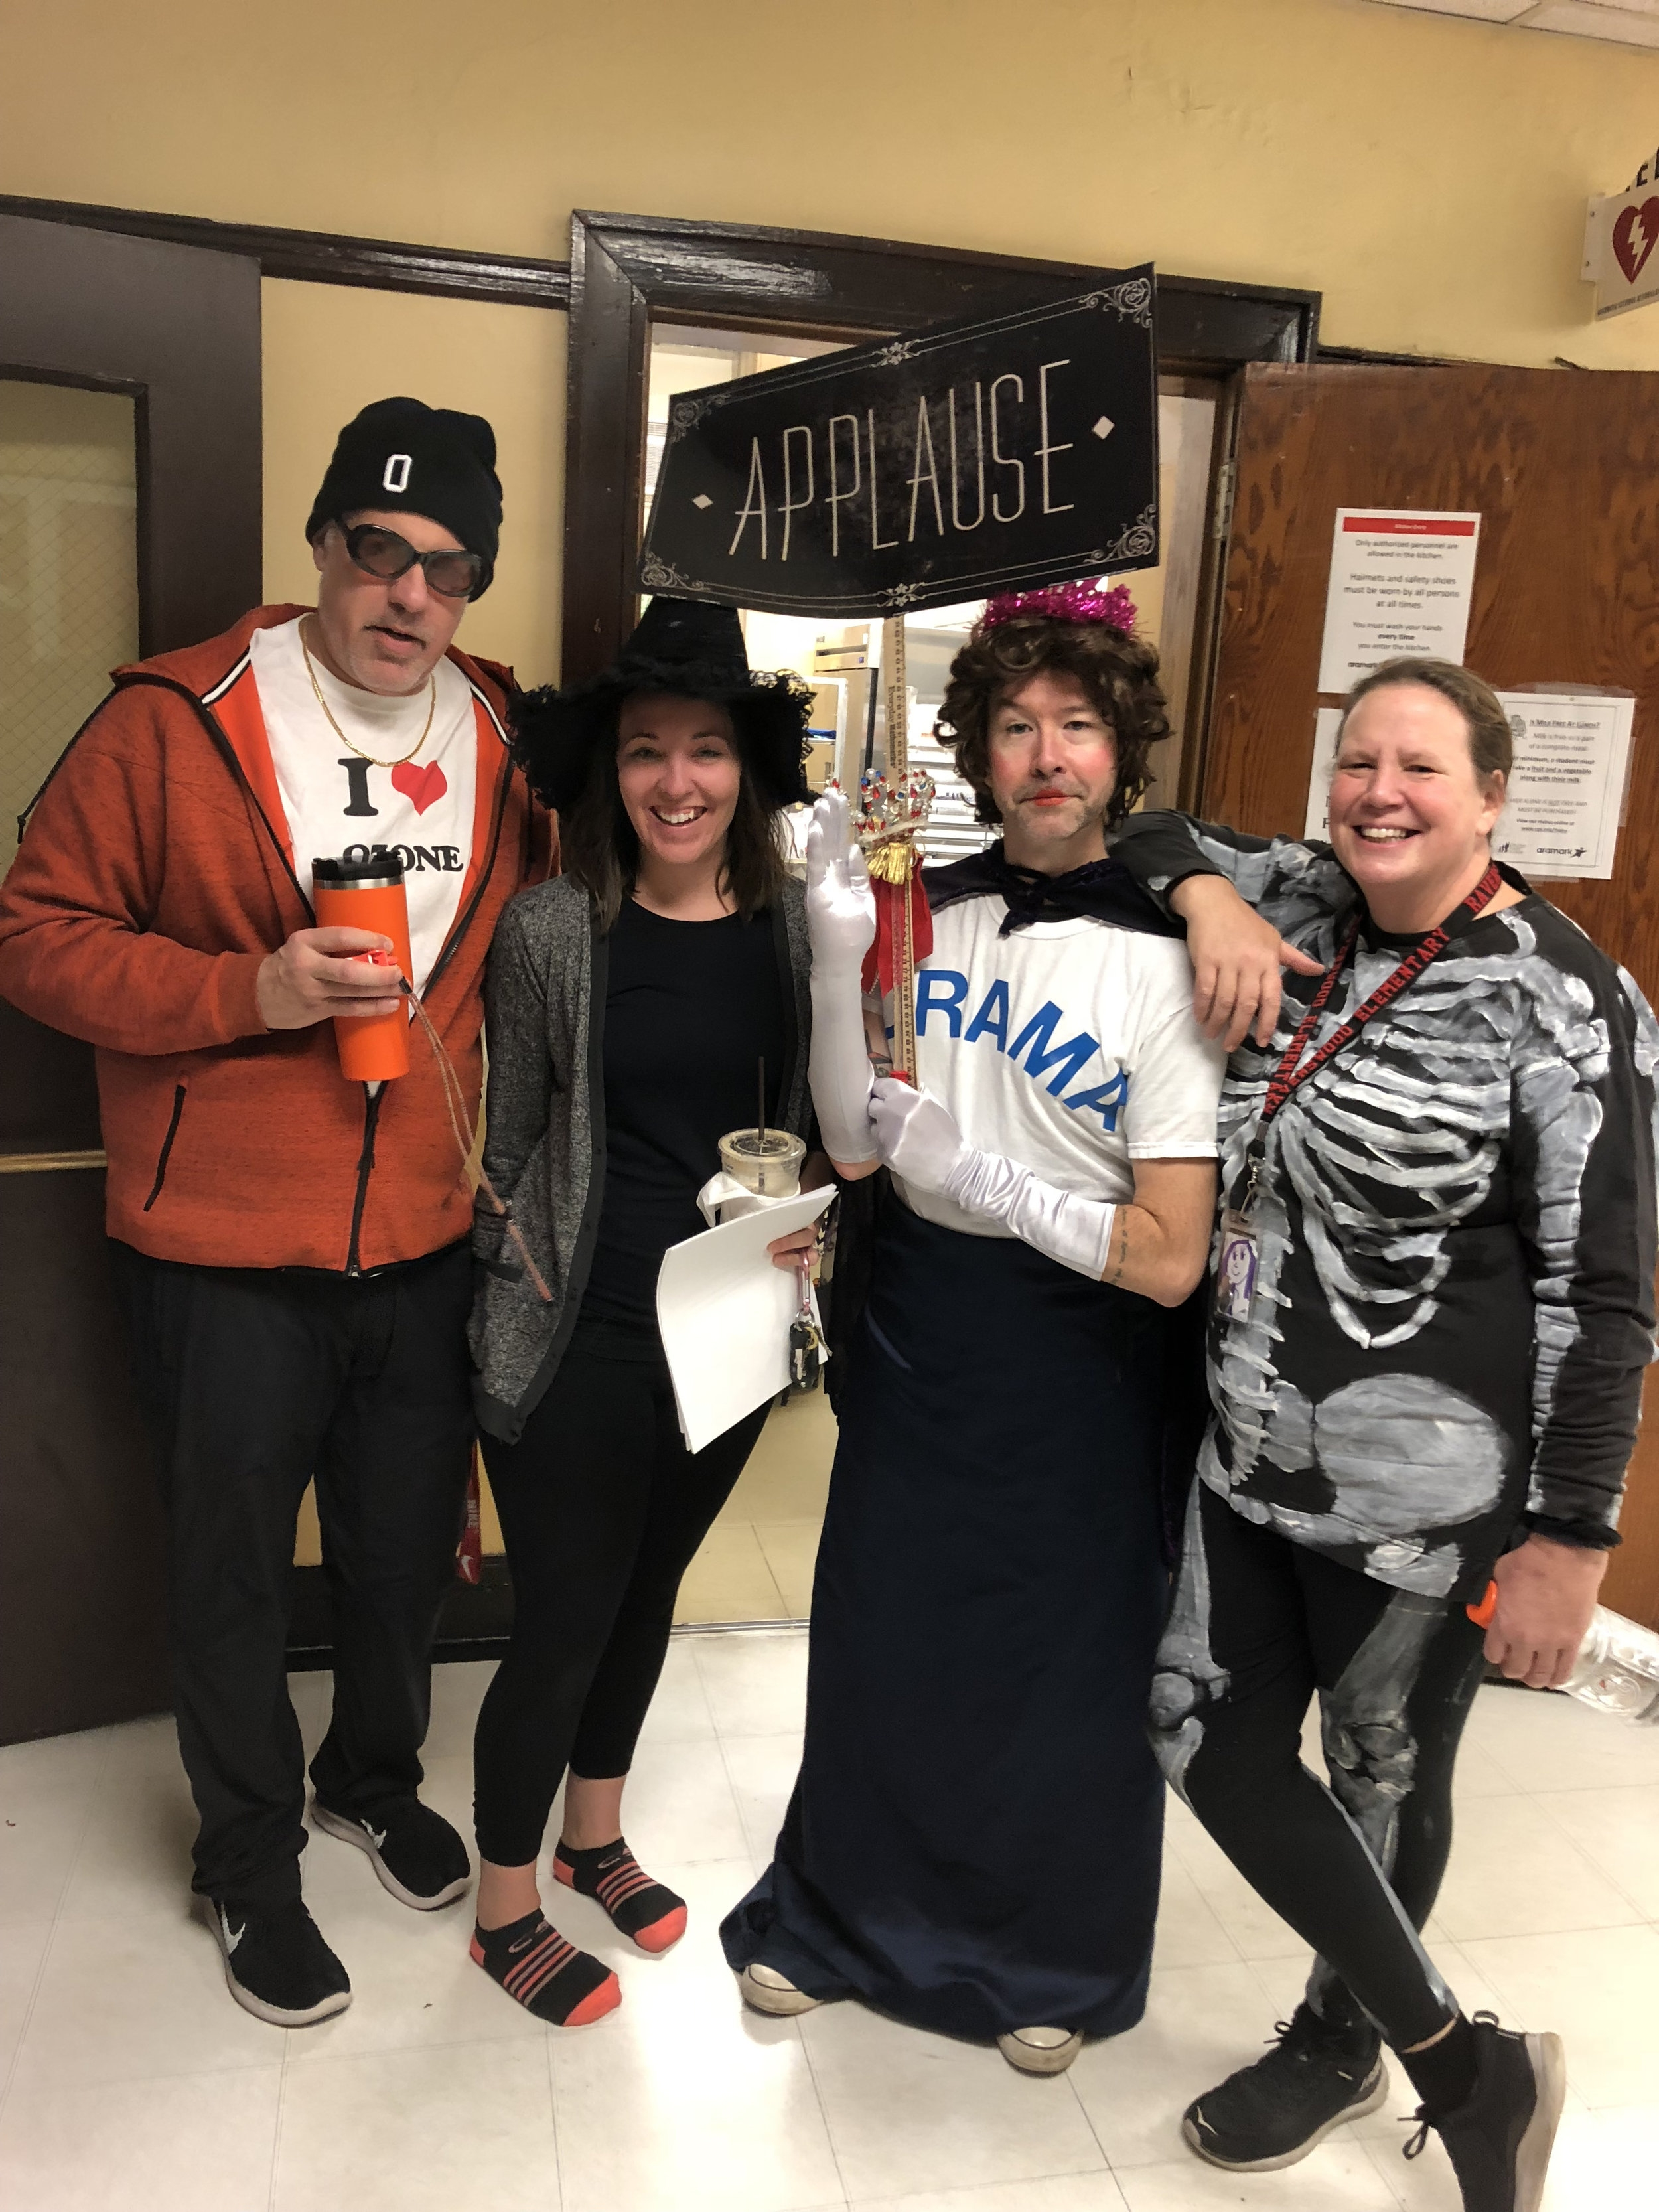 Our Essentials teachers celebrating Halloween 2018. We go all in every day of the year!